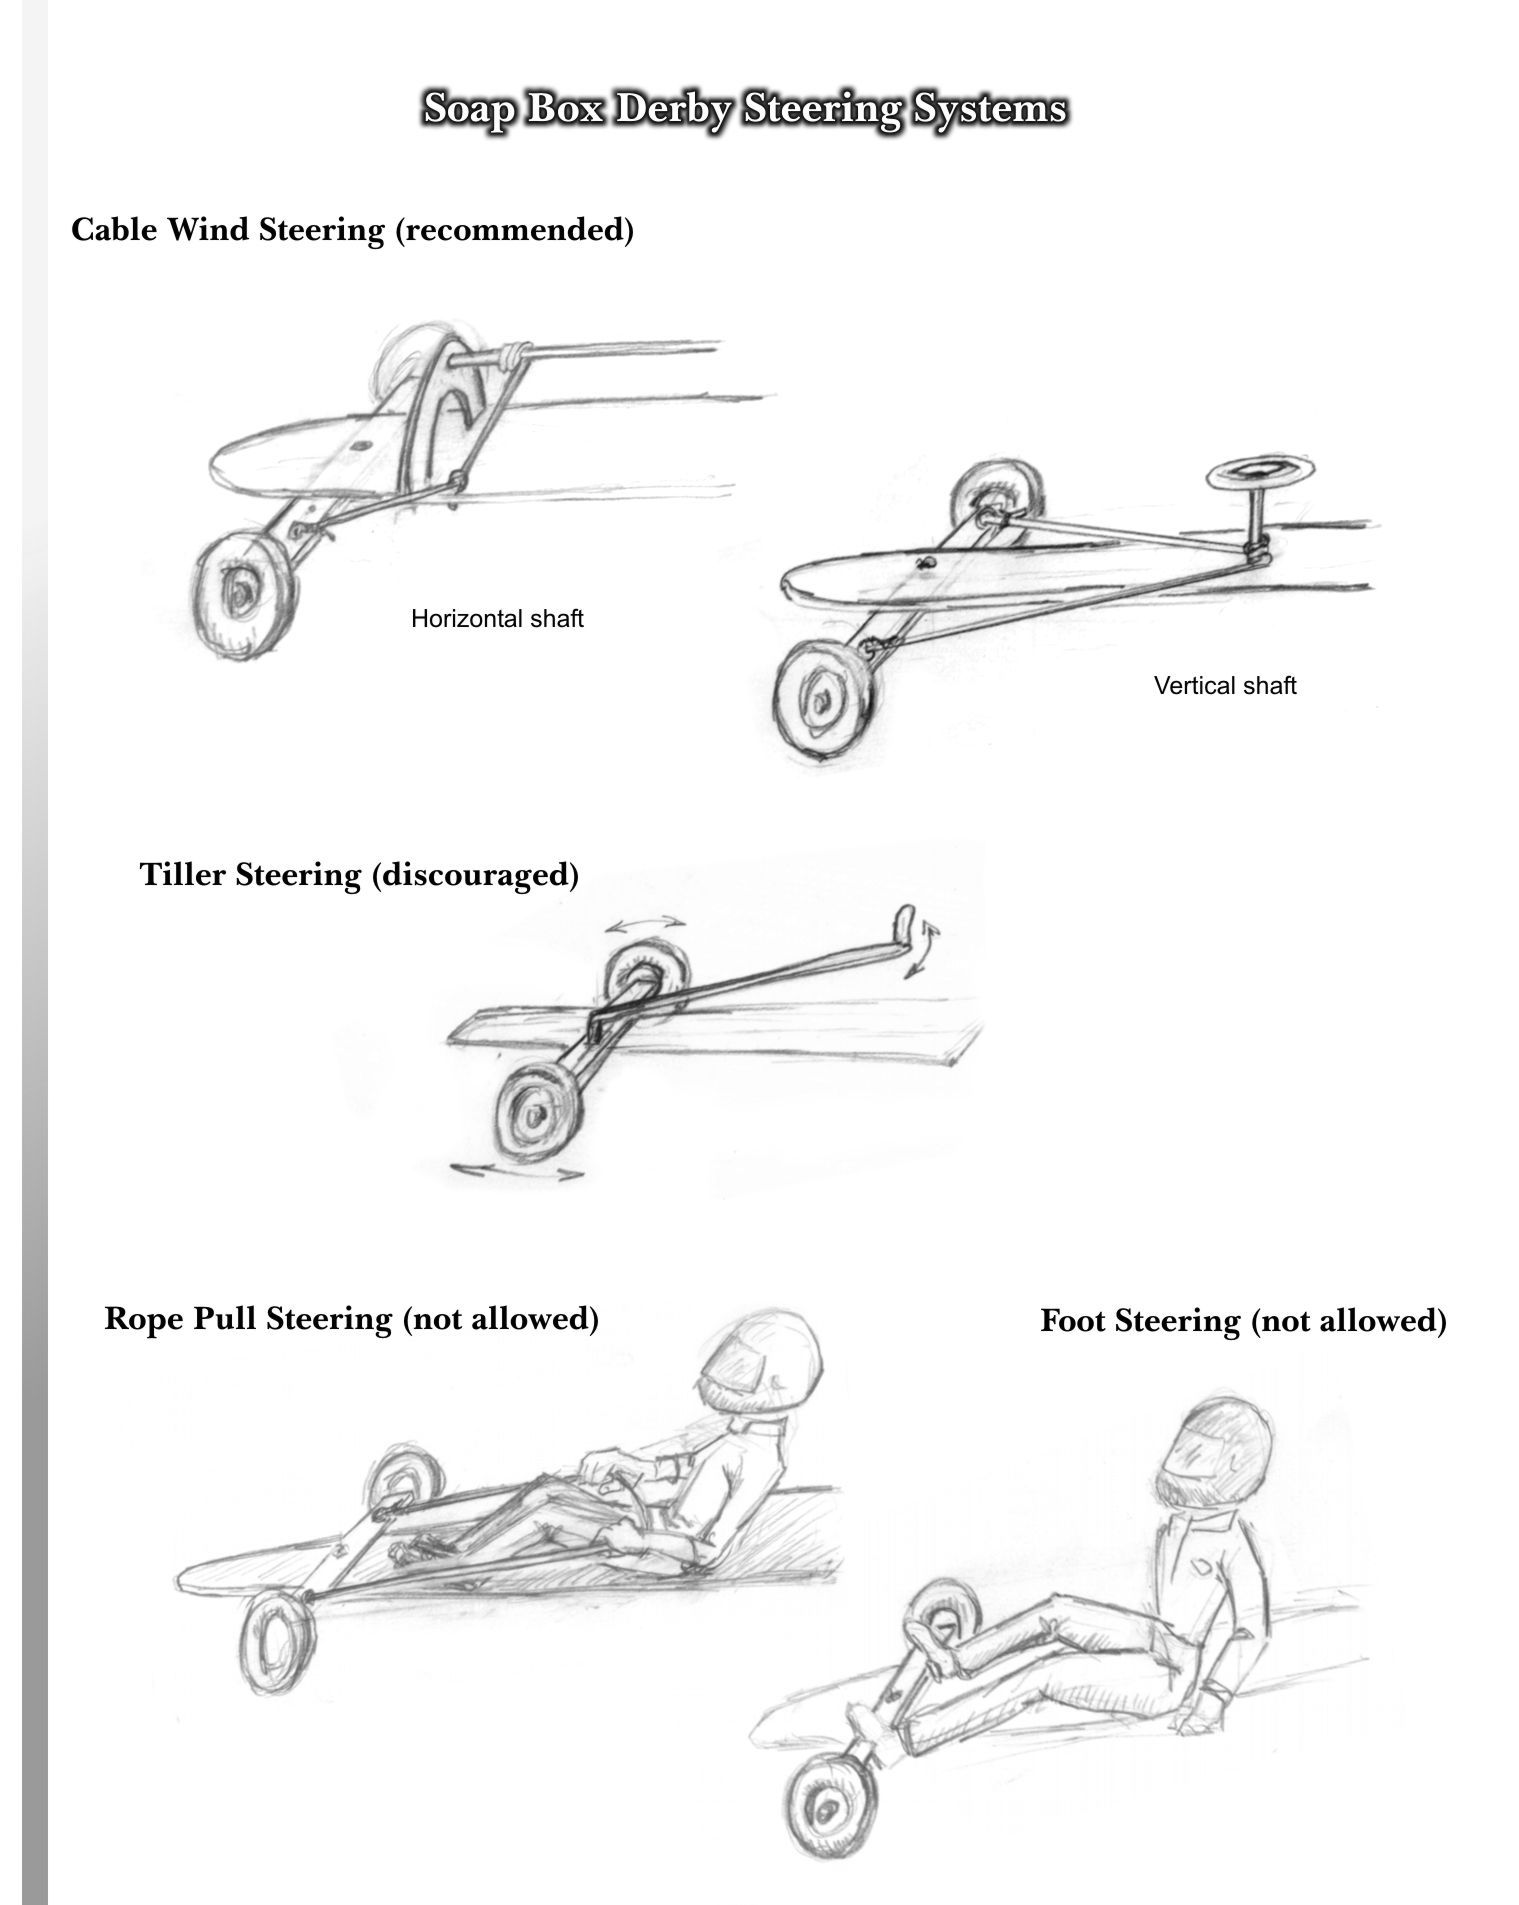 types of steering for soap box derby cars soapbox derby ideas wiring diagram 1955 aston martin db3s ft boxcar free download wiring [ 1519 x 1905 Pixel ]